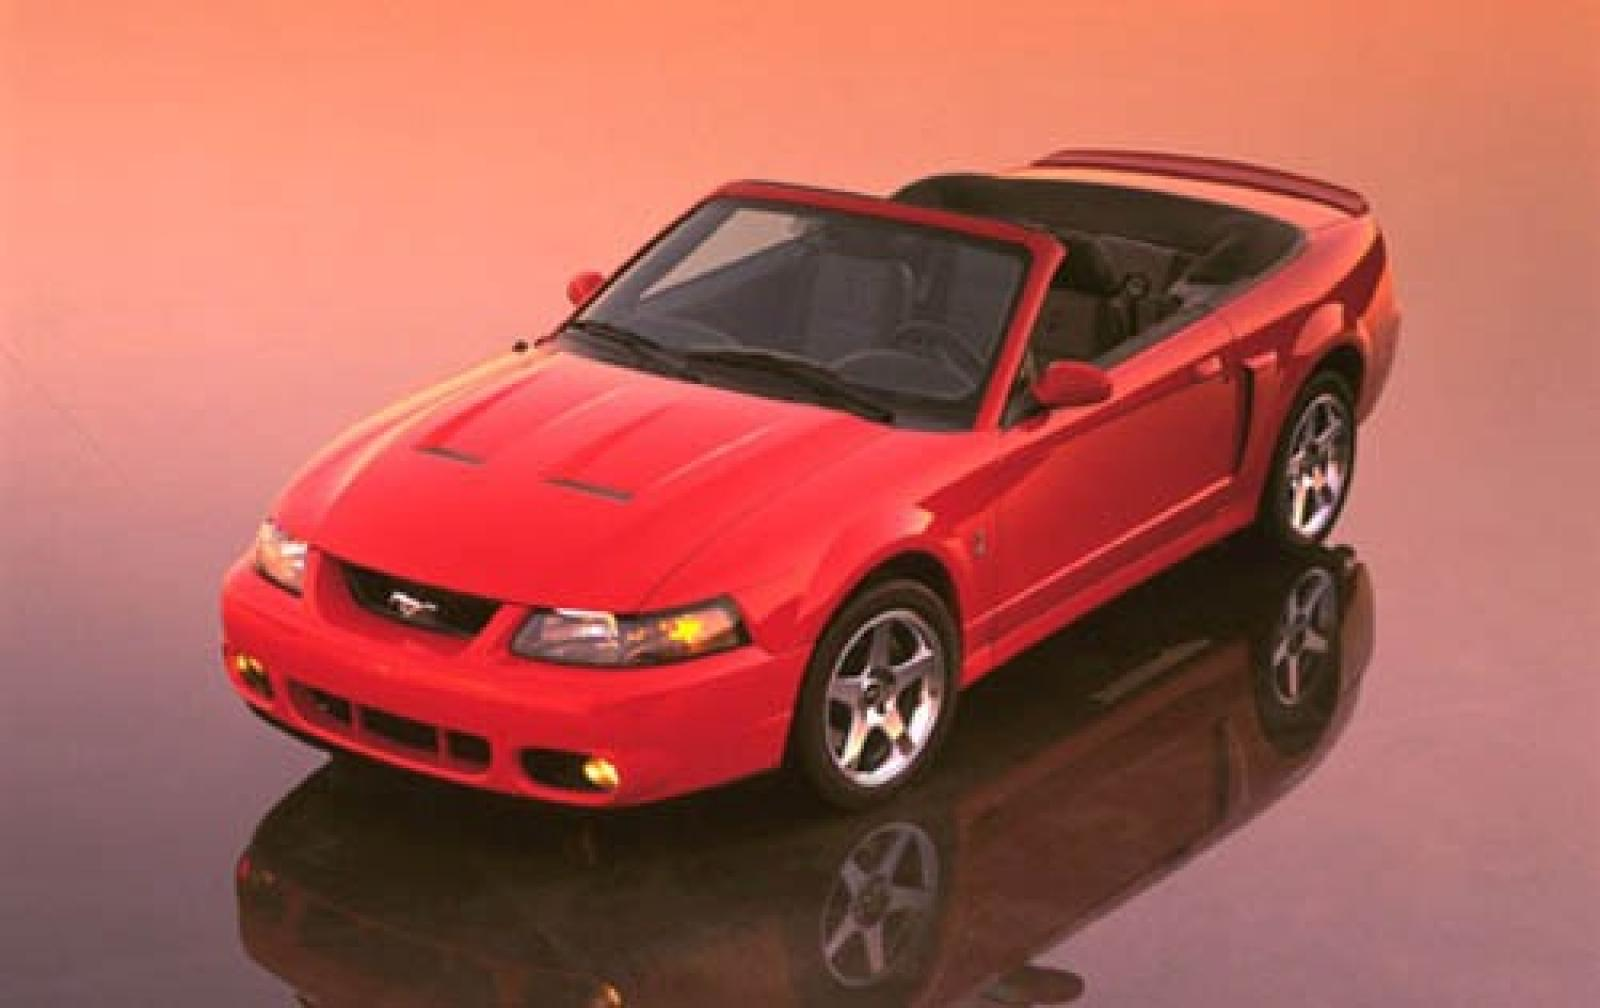 2003 ford mustang information and photos zombiedrive 800 1024 1280 1600 origin 2003 ford mustang sciox Choice Image